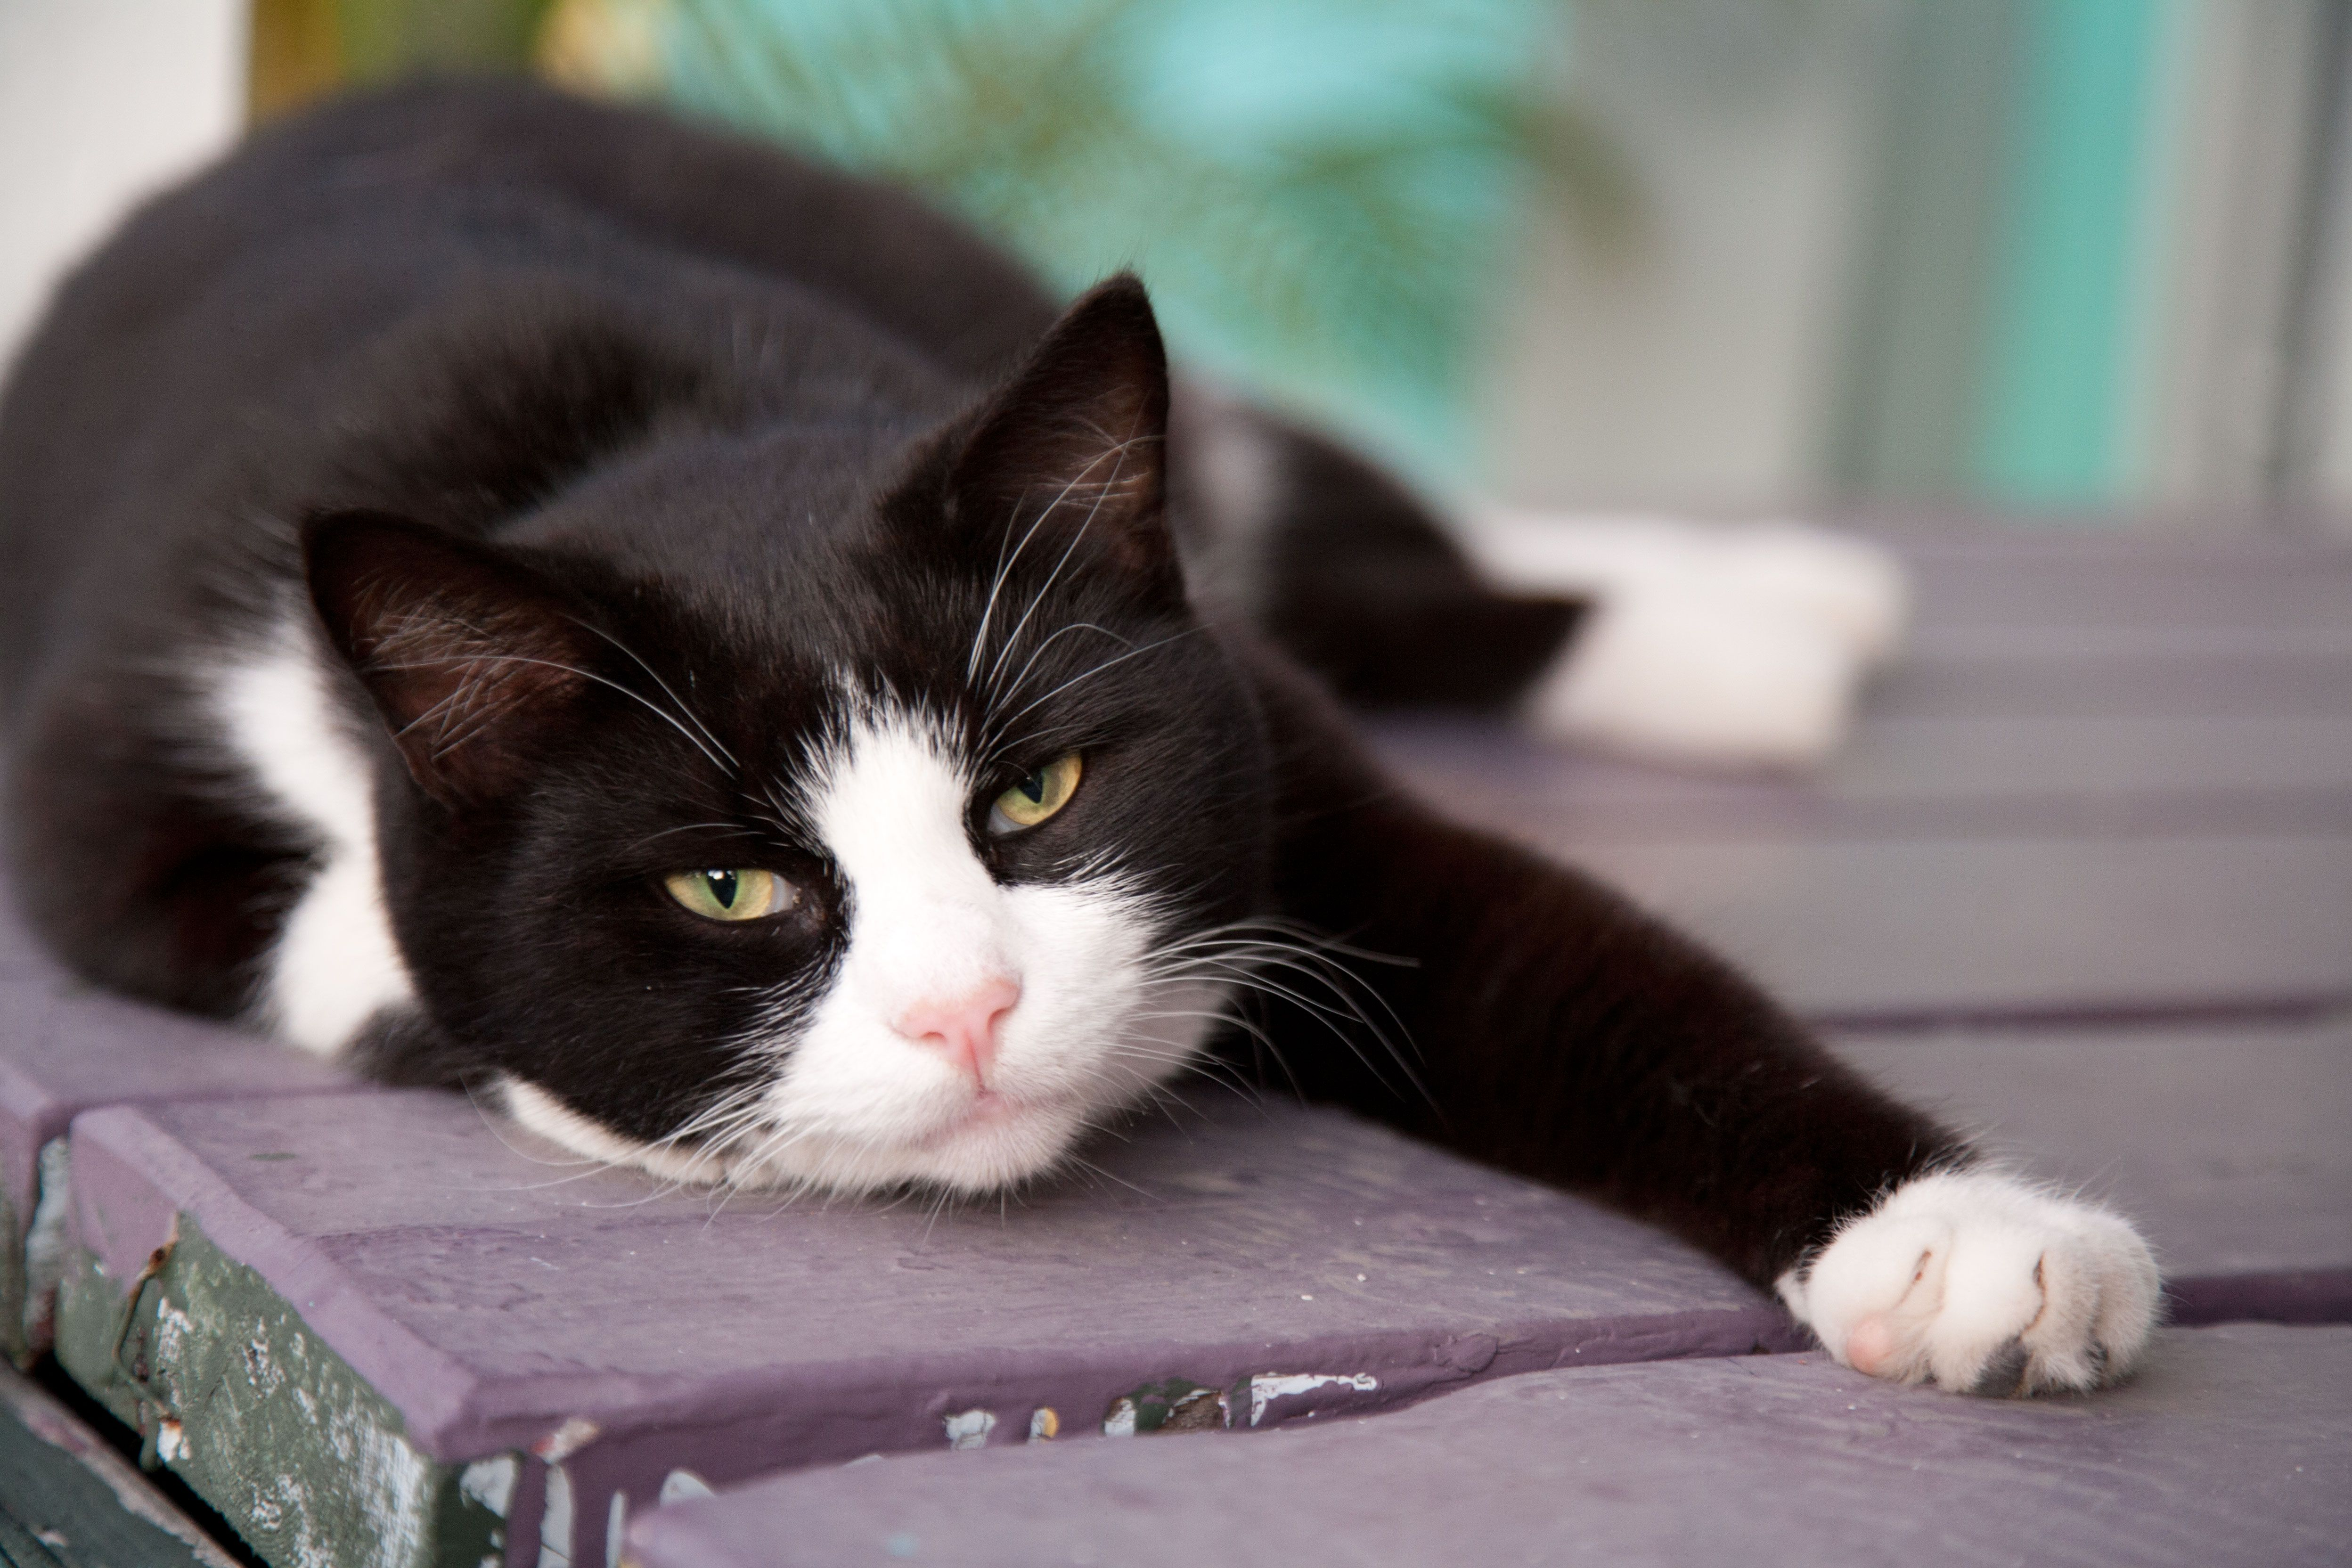 25 Names For Southern Cats Cats Cat Purr Black And White Kittens